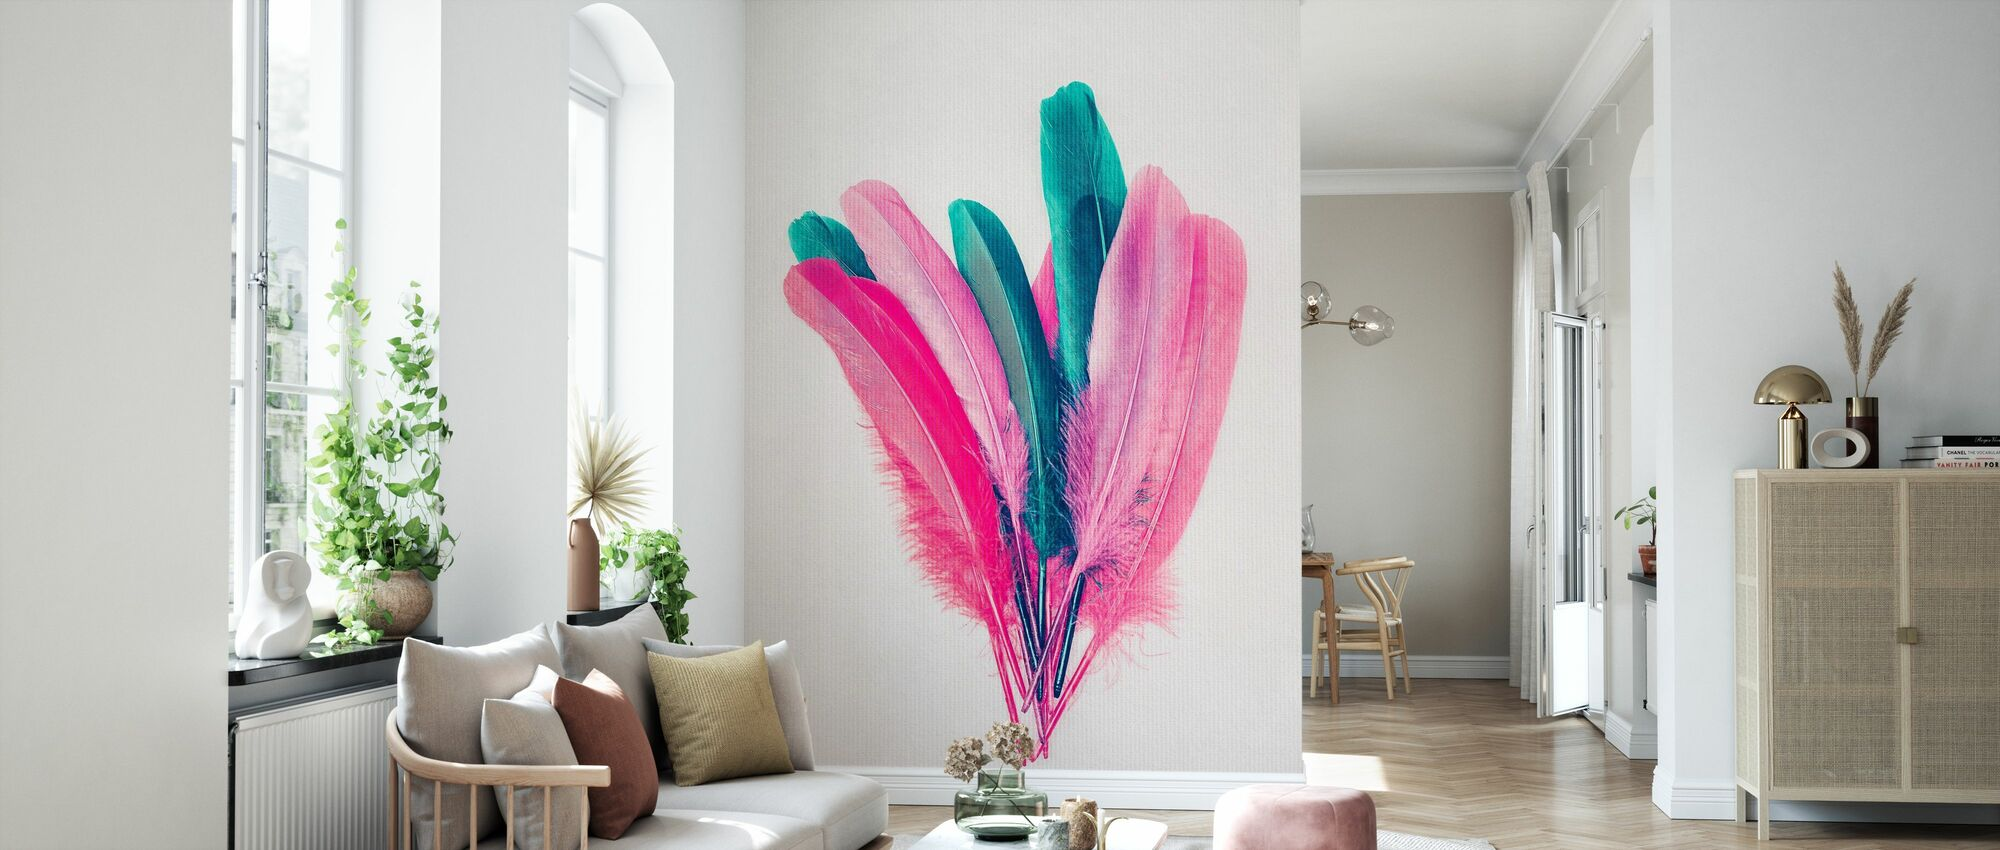 Feather Bouquet - Wallpaper - Living Room